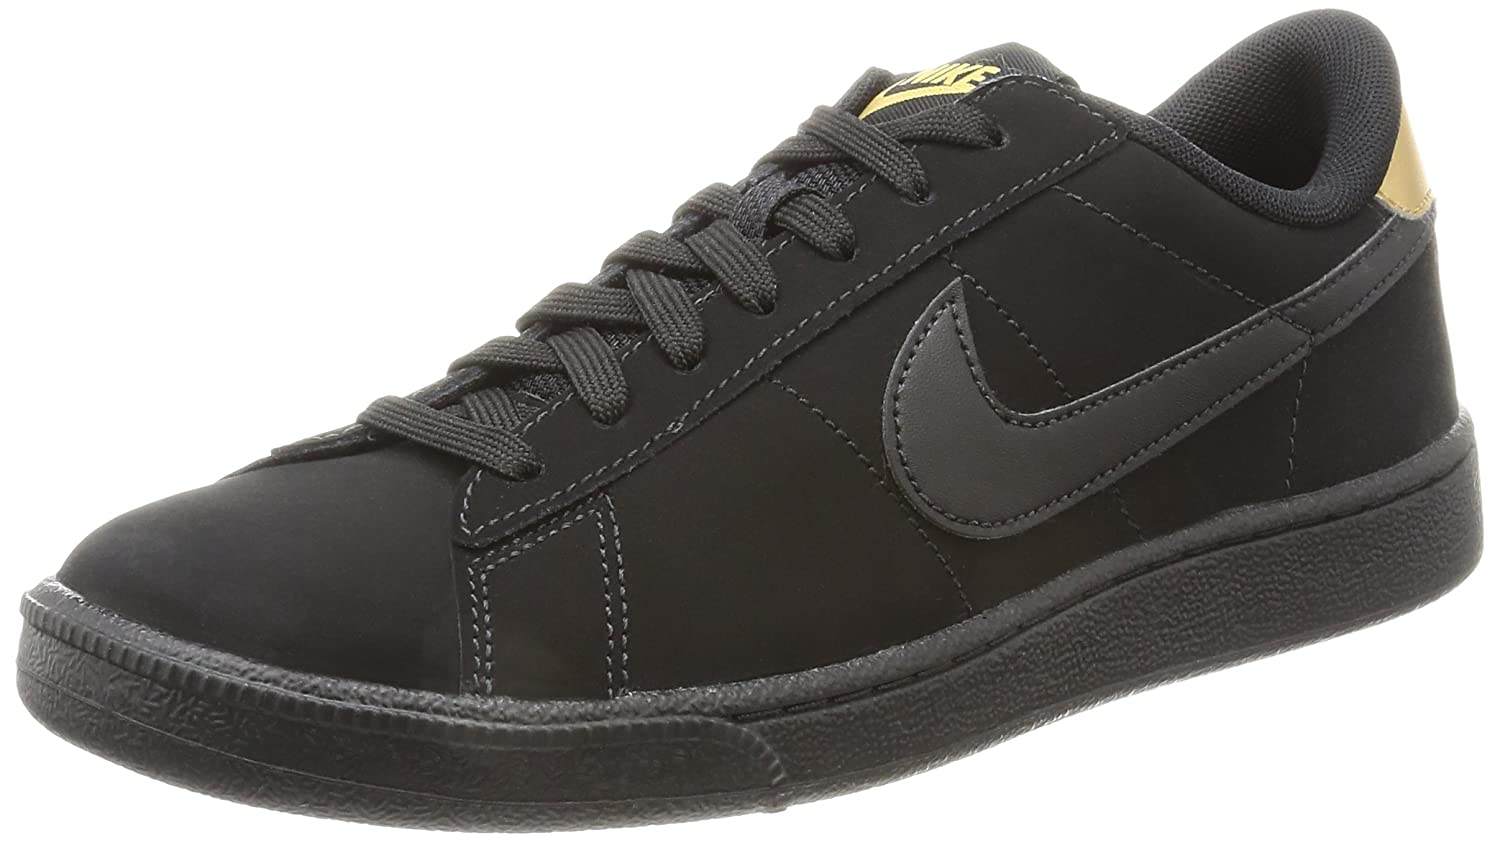 official photos c6e8b df196 Nike Tennis Classic Cs Size 8m (US 8)  Buy Online at Low Prices in India -  Amazon.in